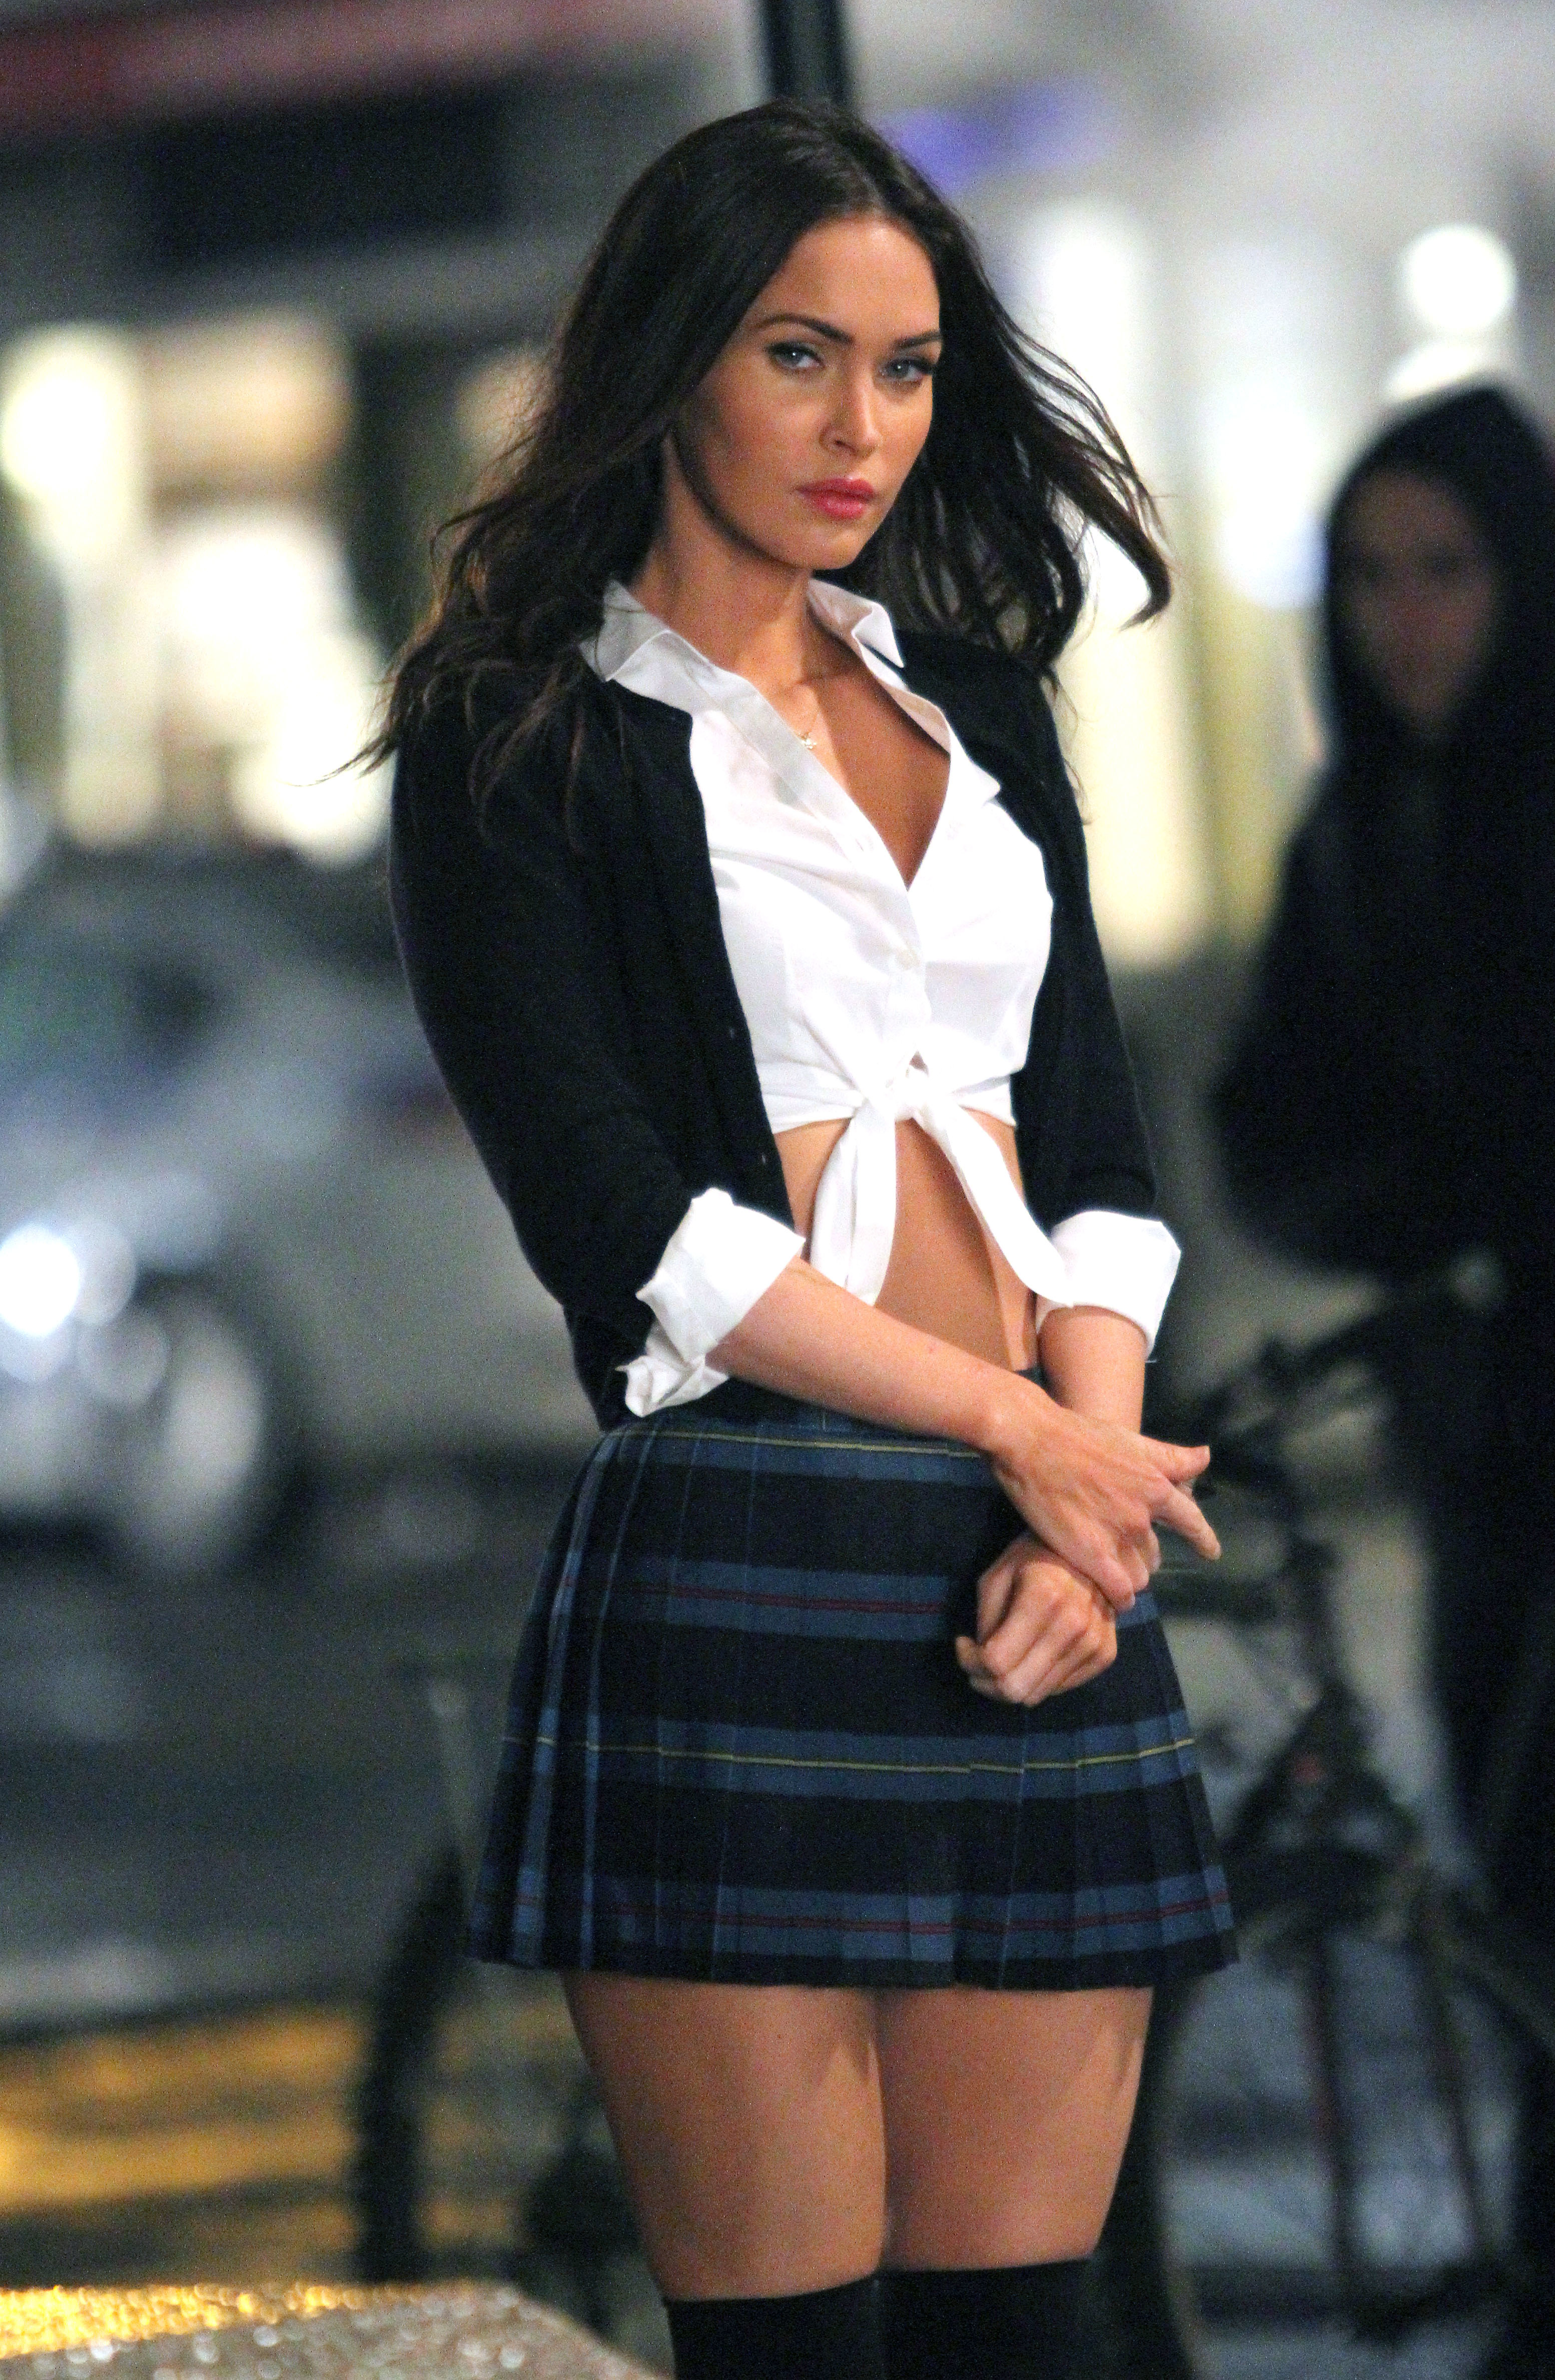 Megan Fox is now the co owner, brand ambassador of Frederick's of Hollywood